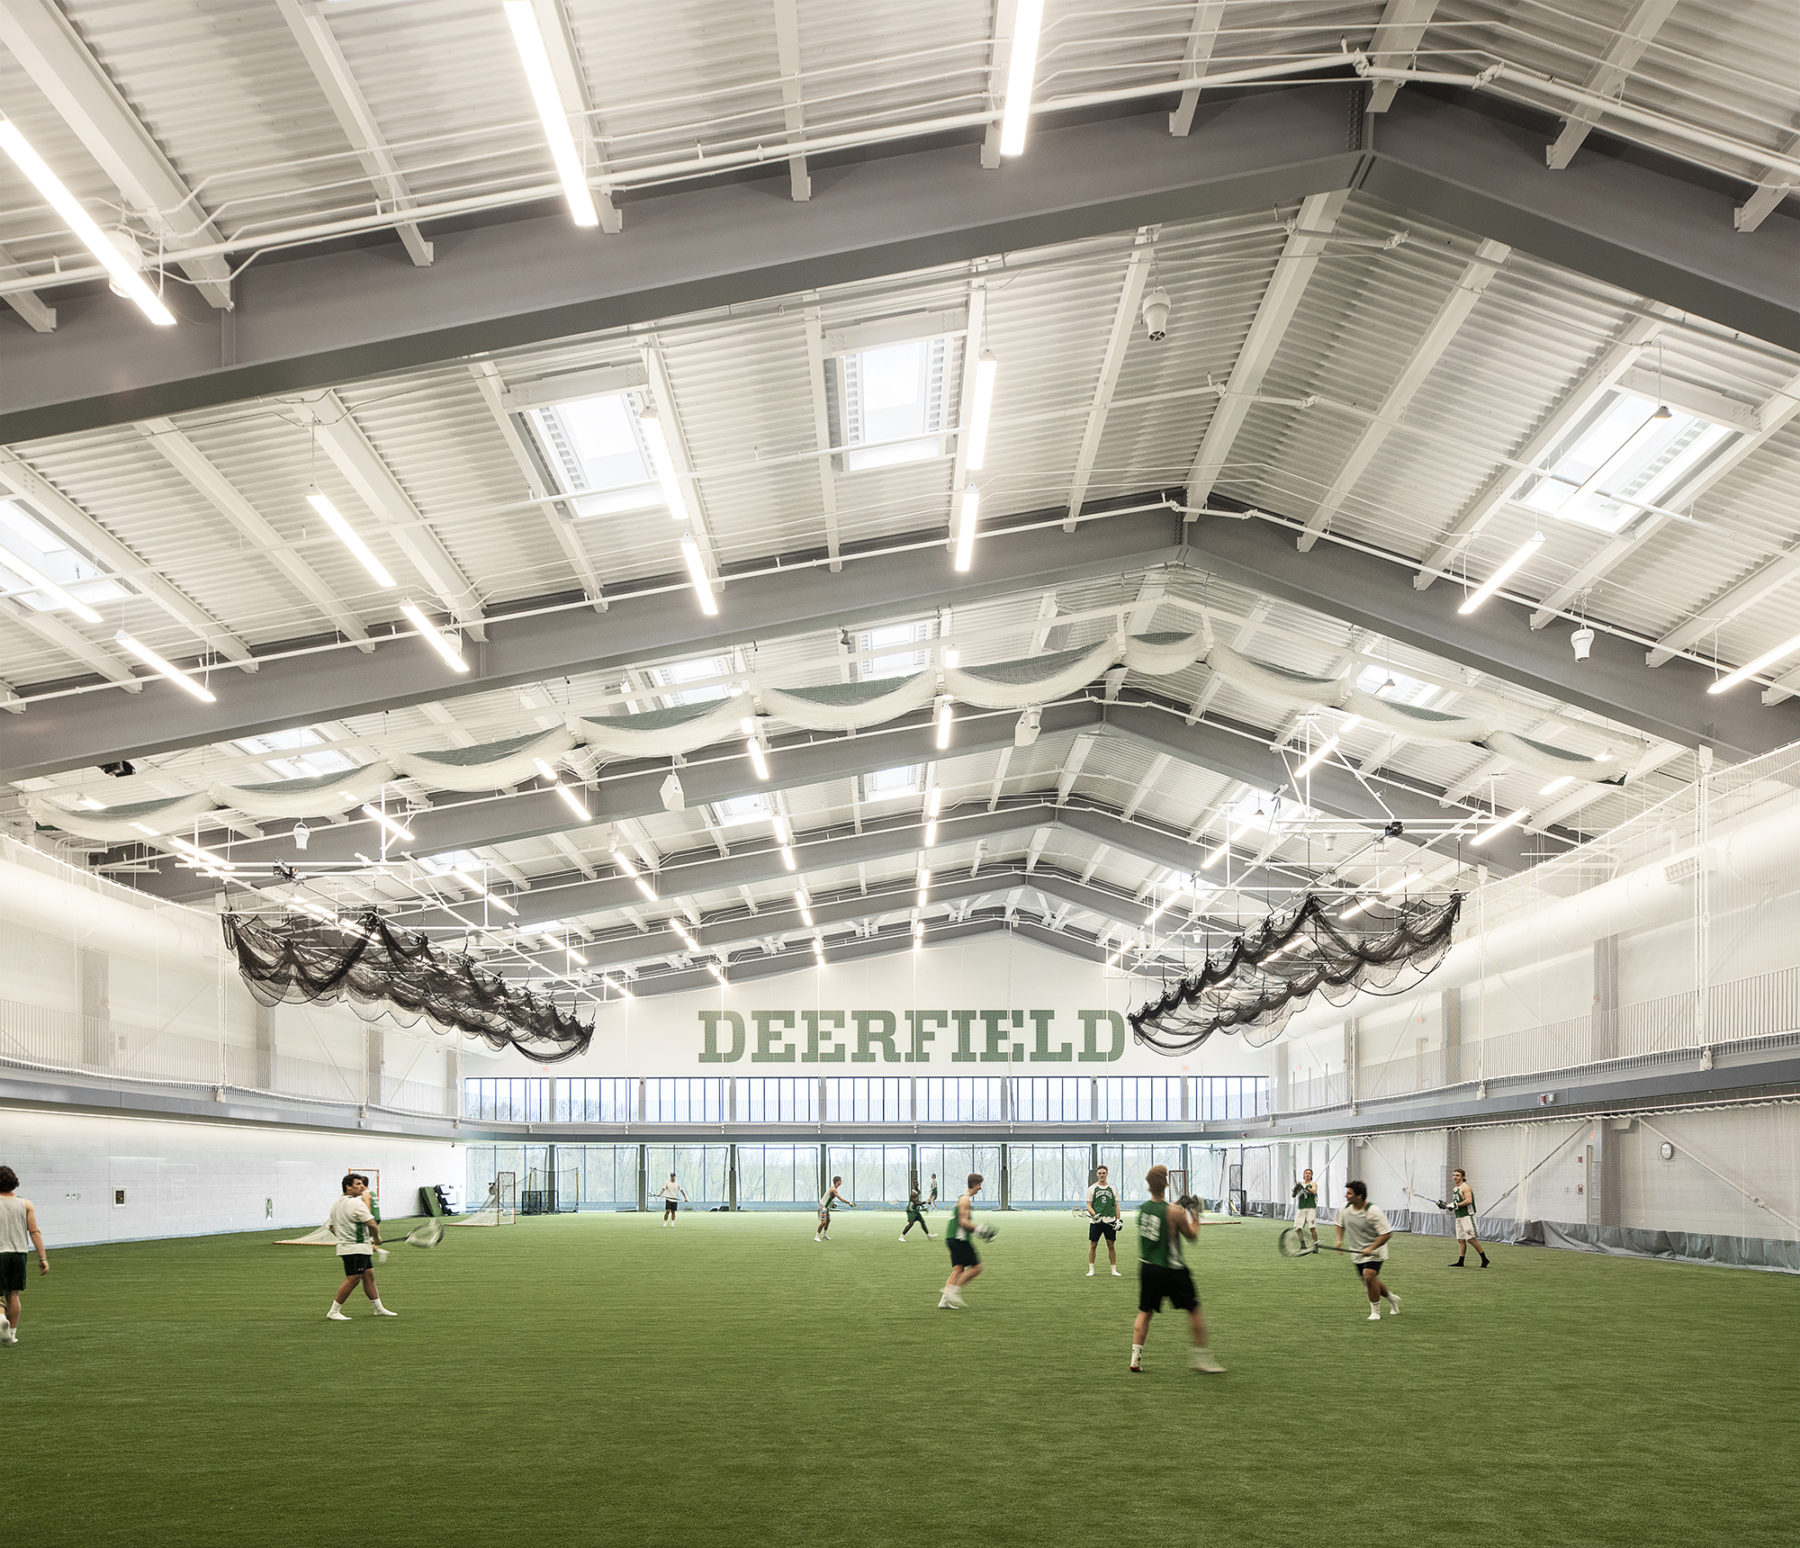 inside view of field house, students playing lacrosse